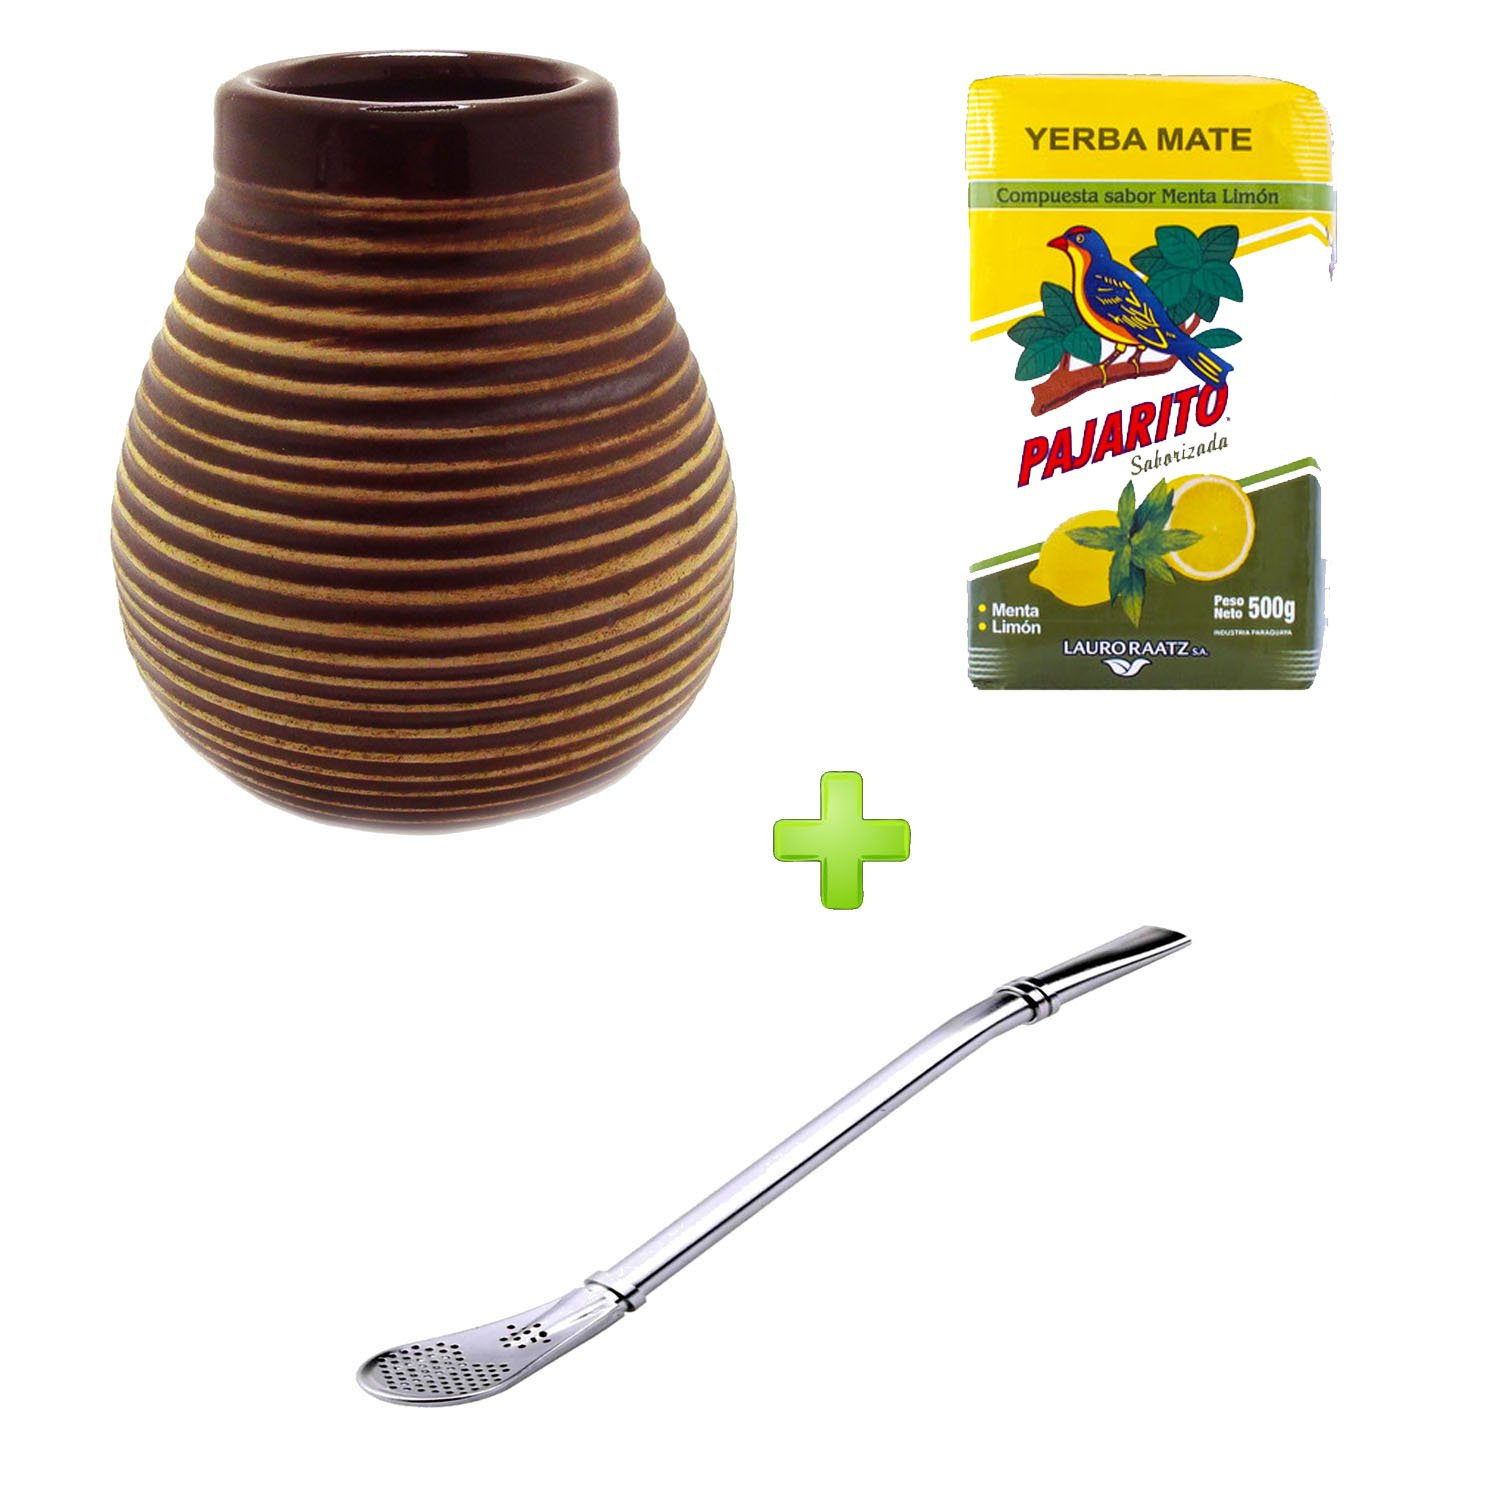 Mein Teeshop Brown Ceramic Mate Cup + Bombilla Stainless Steel Mate Cups + Pajarito Menta Lemon 500g